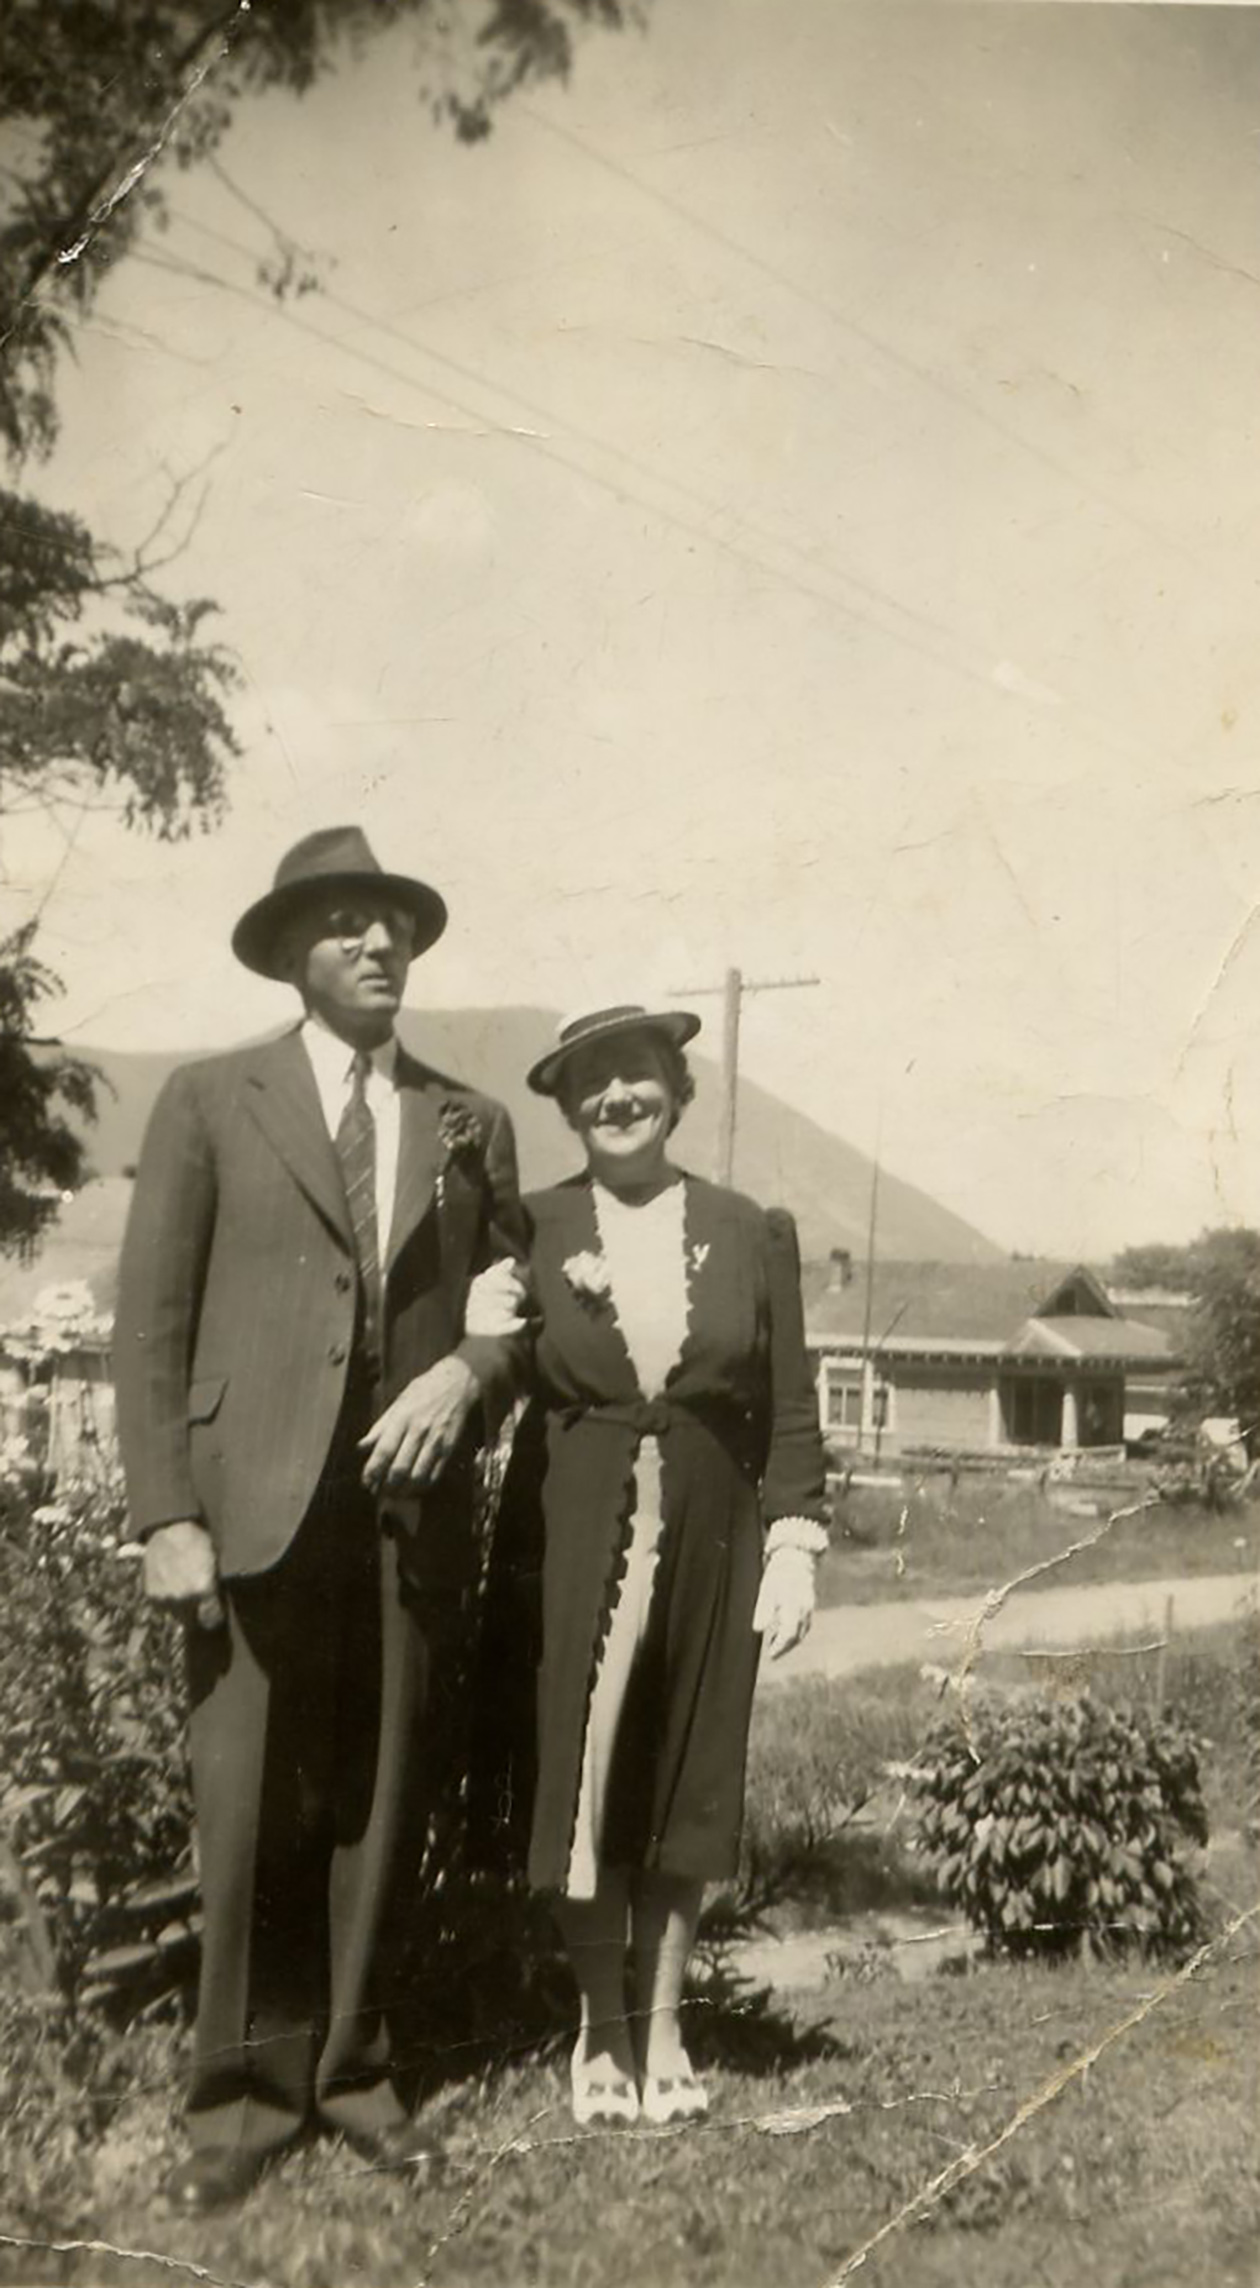 Dick and Mary Askew